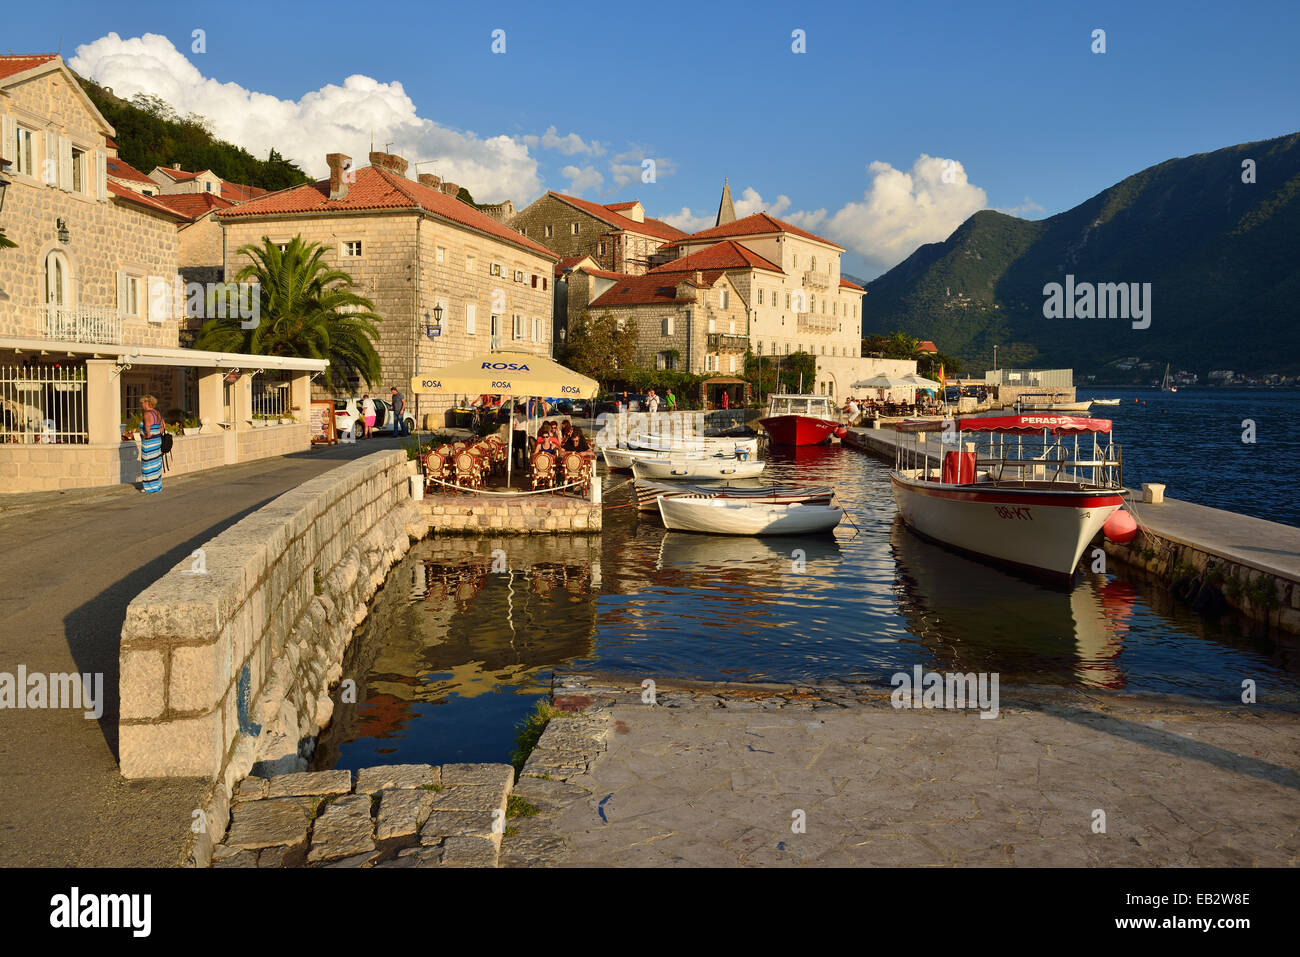 Port, Perast, Bay of Kotor, Crna Gora, Montenegro - Stock Image